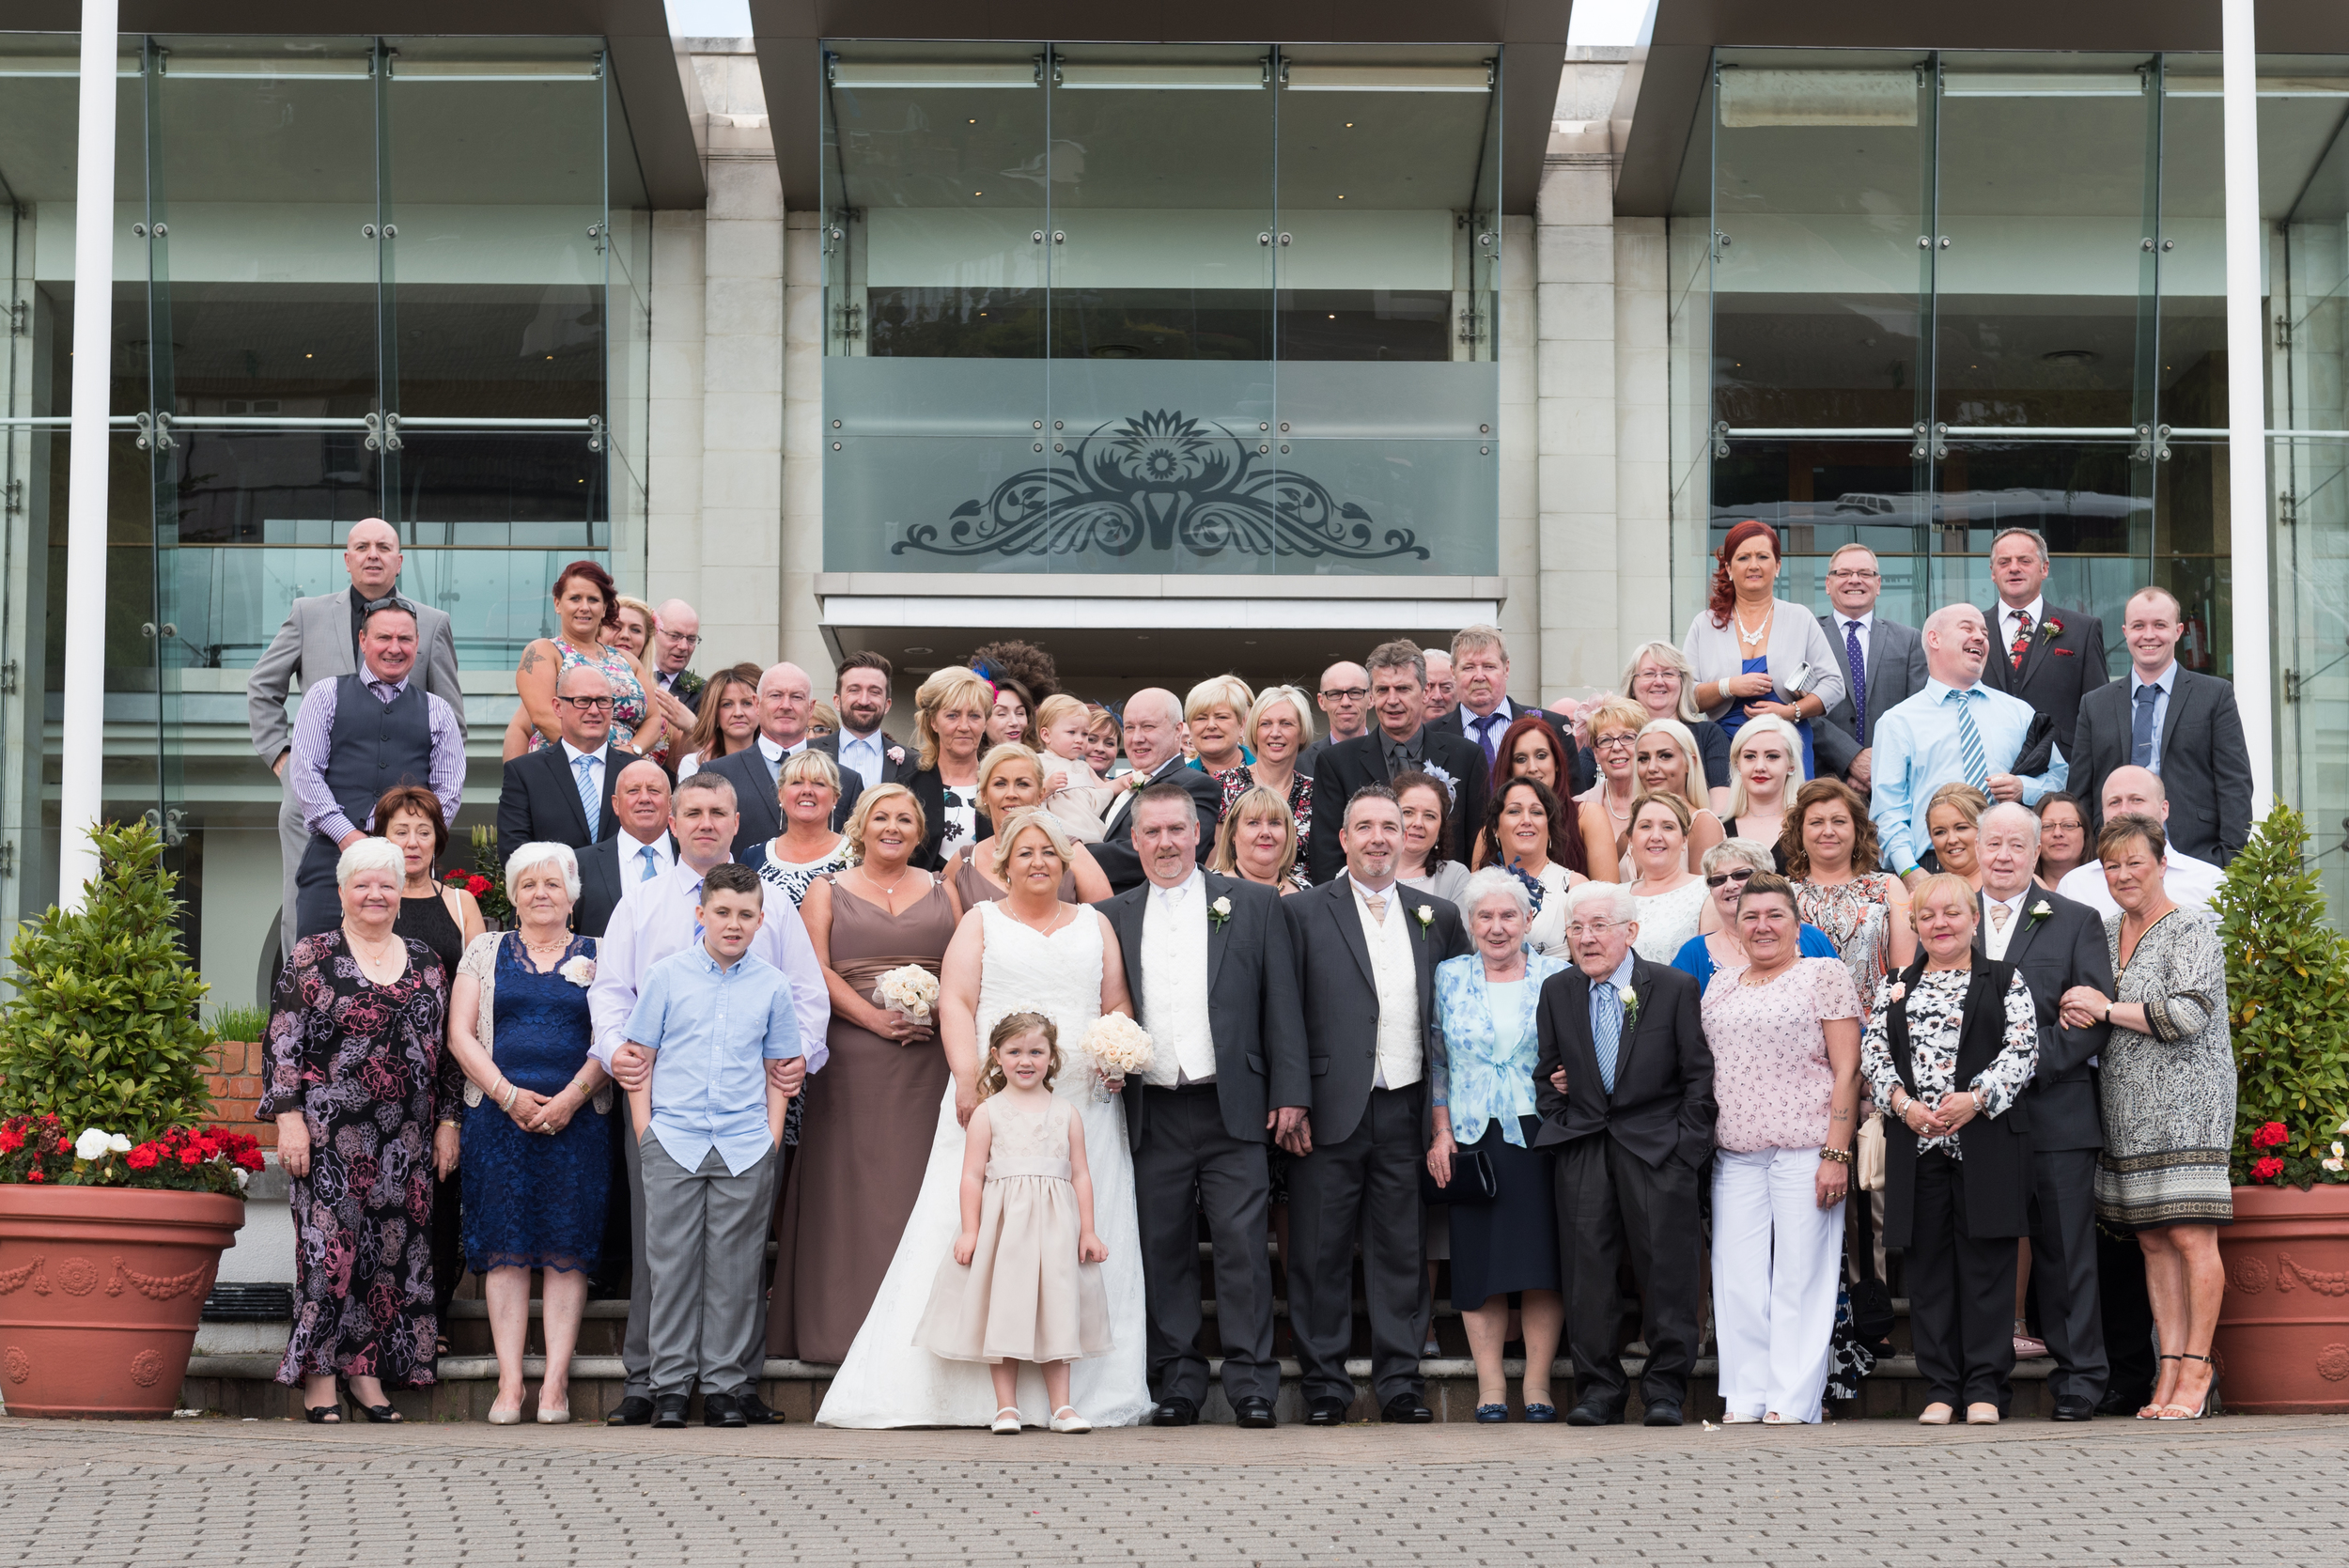 Stormont_Hotel_Wedding_Photography_Group